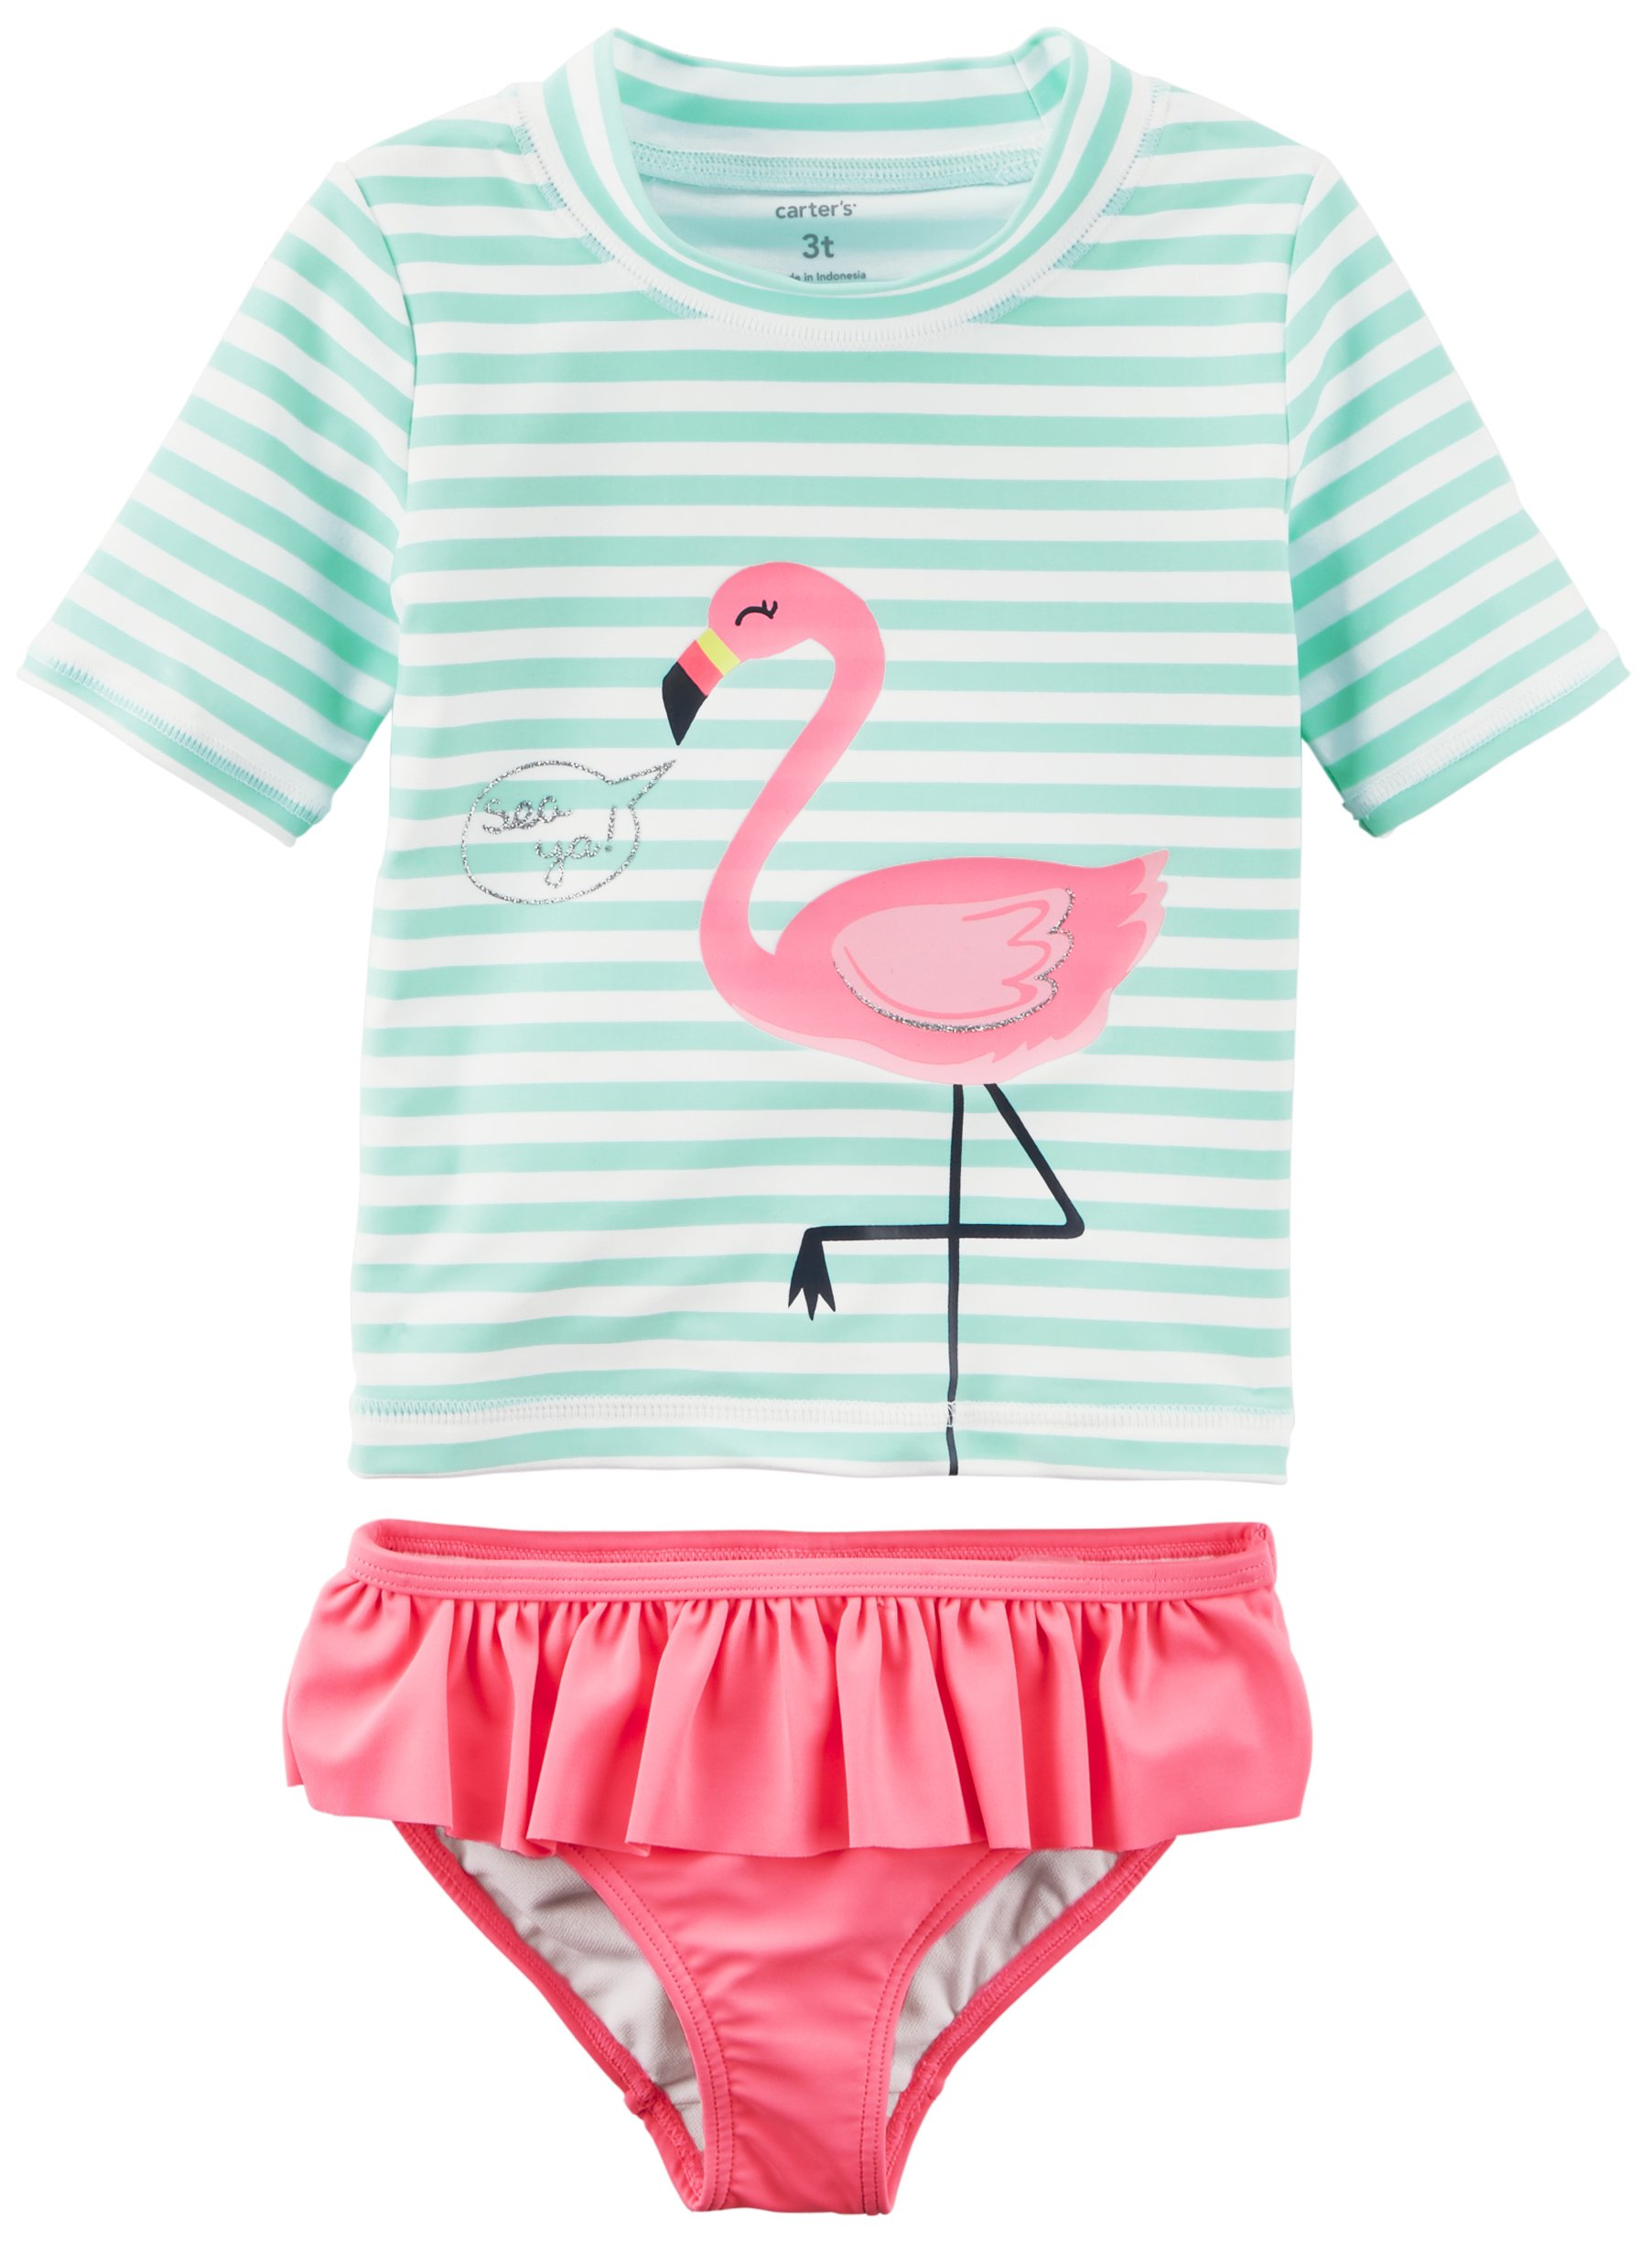 Carter's Girls' Two-Piece Swimsuit, Mint Pink Flamingo, 18 Months